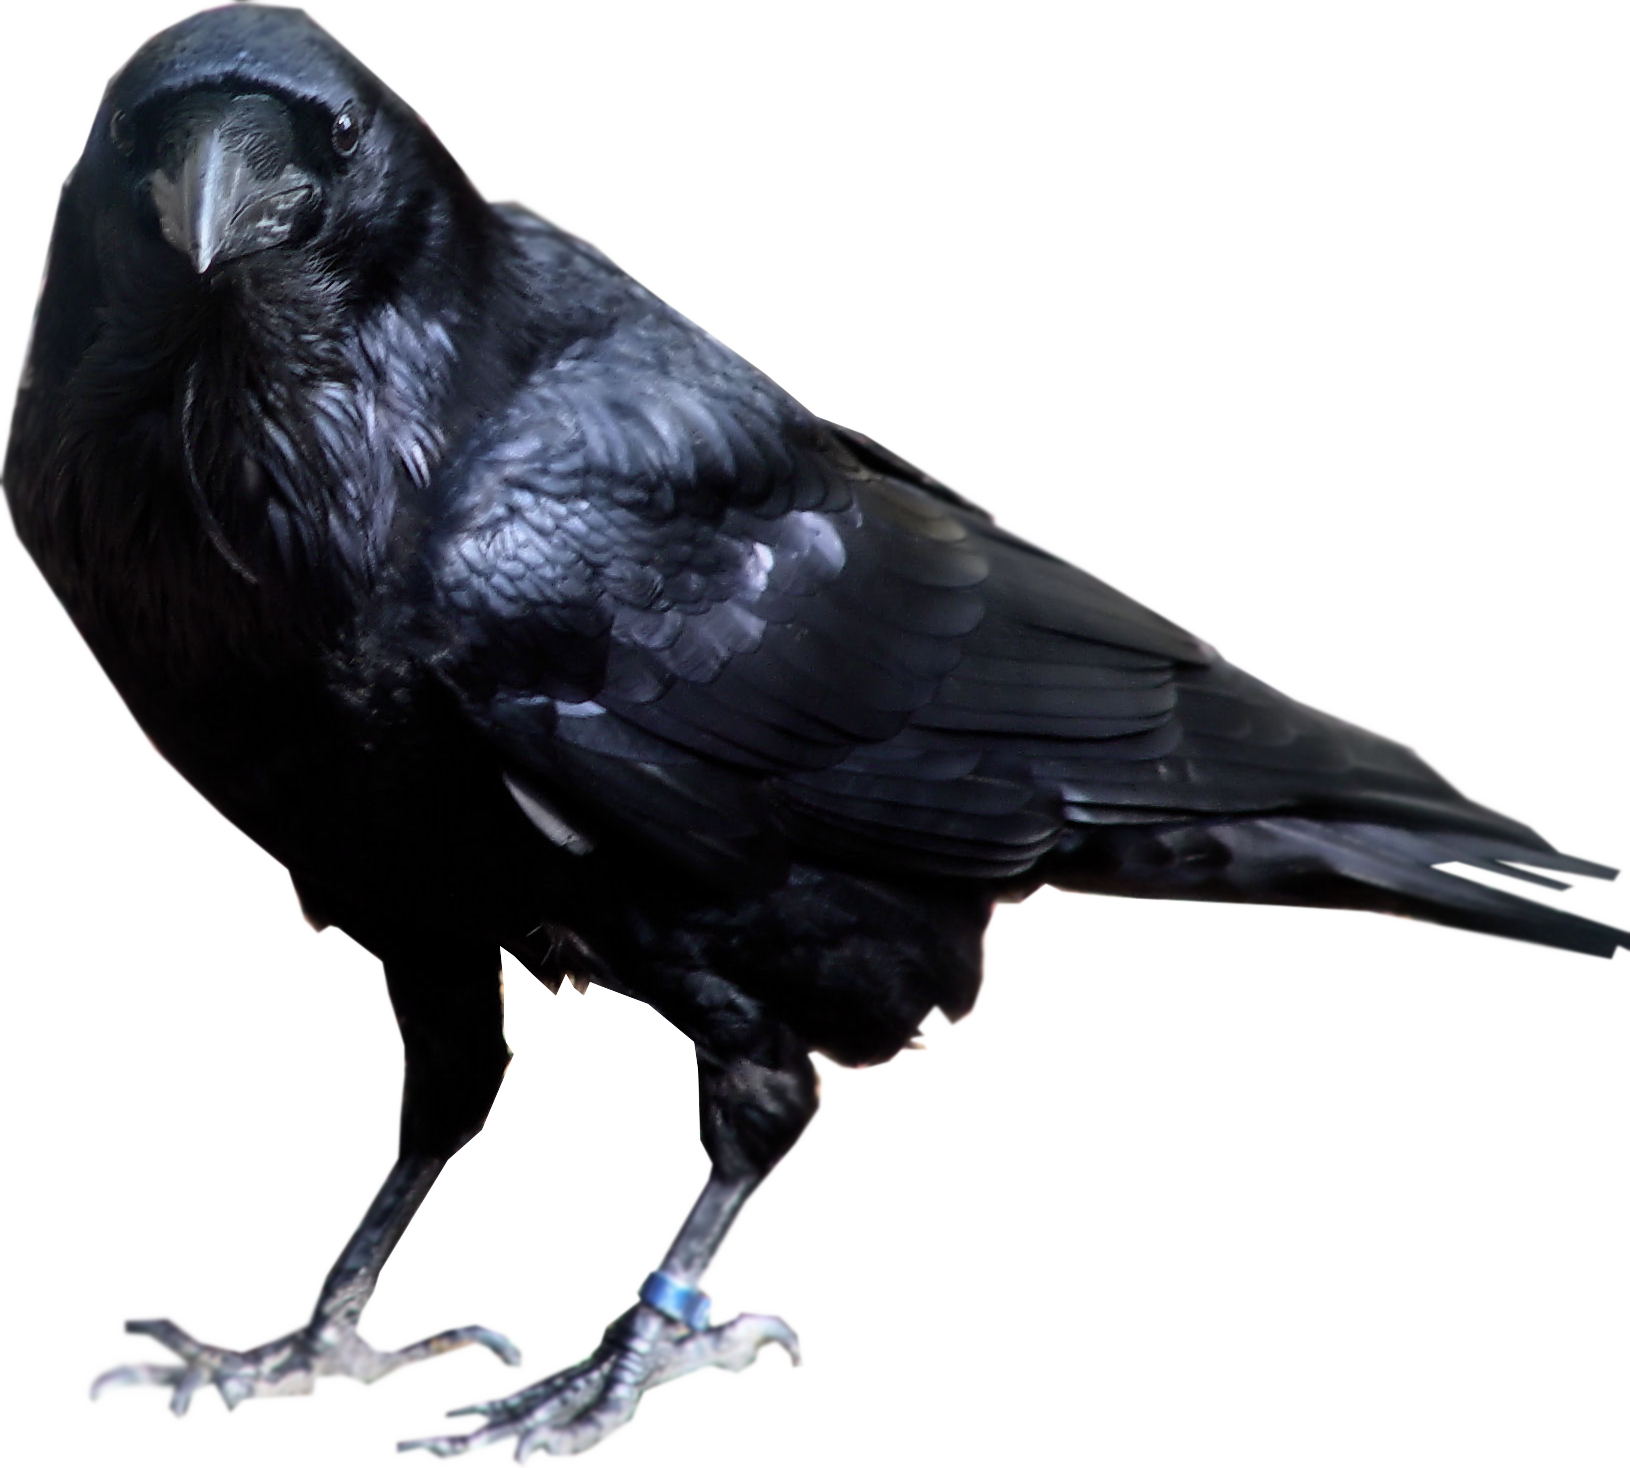 Raven in tree clipart vector freeuse library Raven (cool pics of heroes I like from artists). I'll make more of ... vector freeuse library